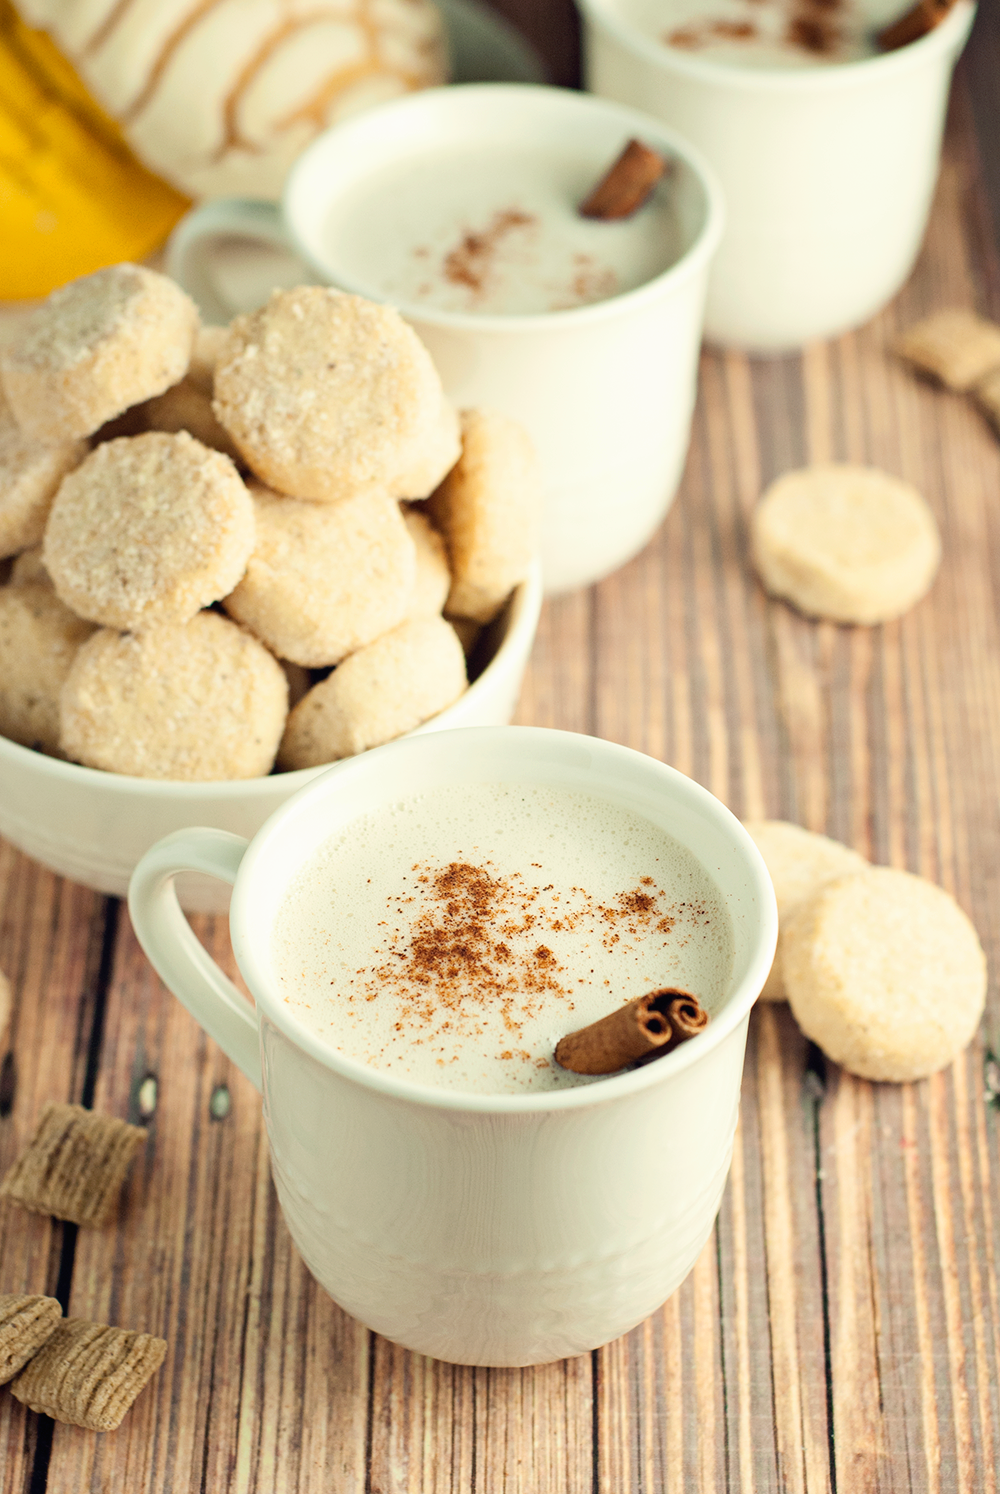 Warm your soul with this amazingly flavorful Avena Caliente (Spiced Hot Oatmeal Drink), perfect for cold winter nights!